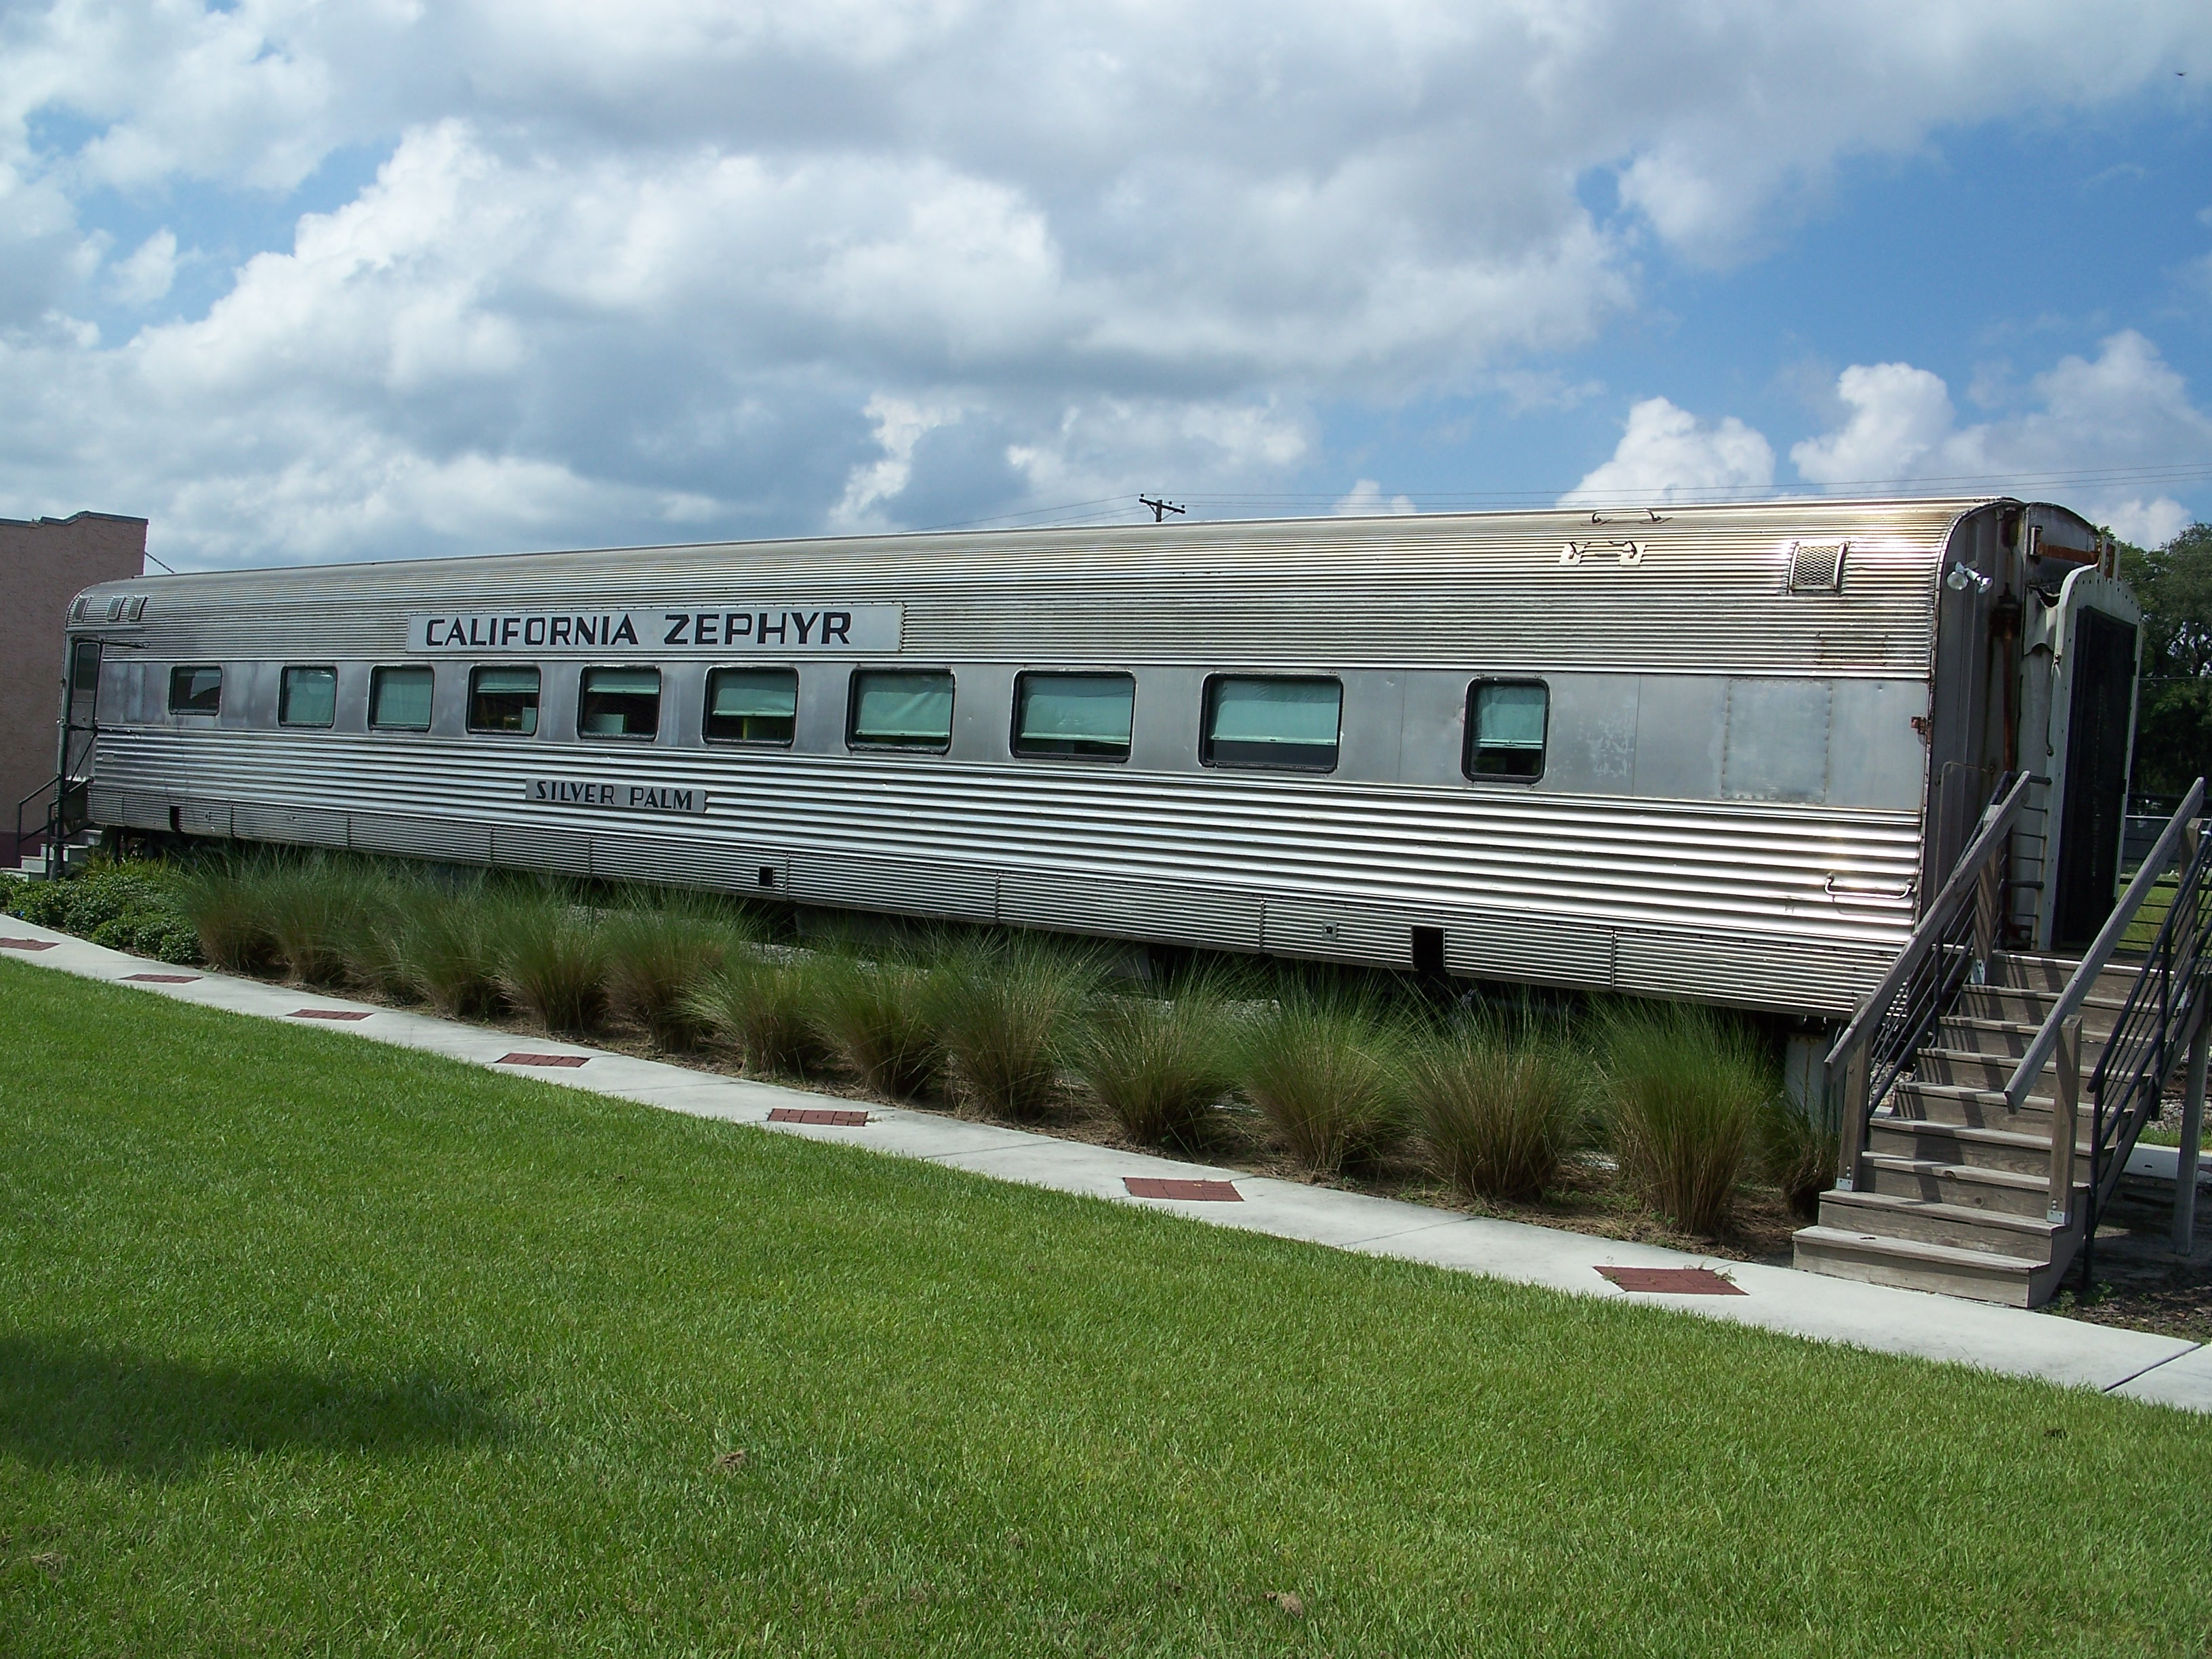 The California Zephyr Dining car